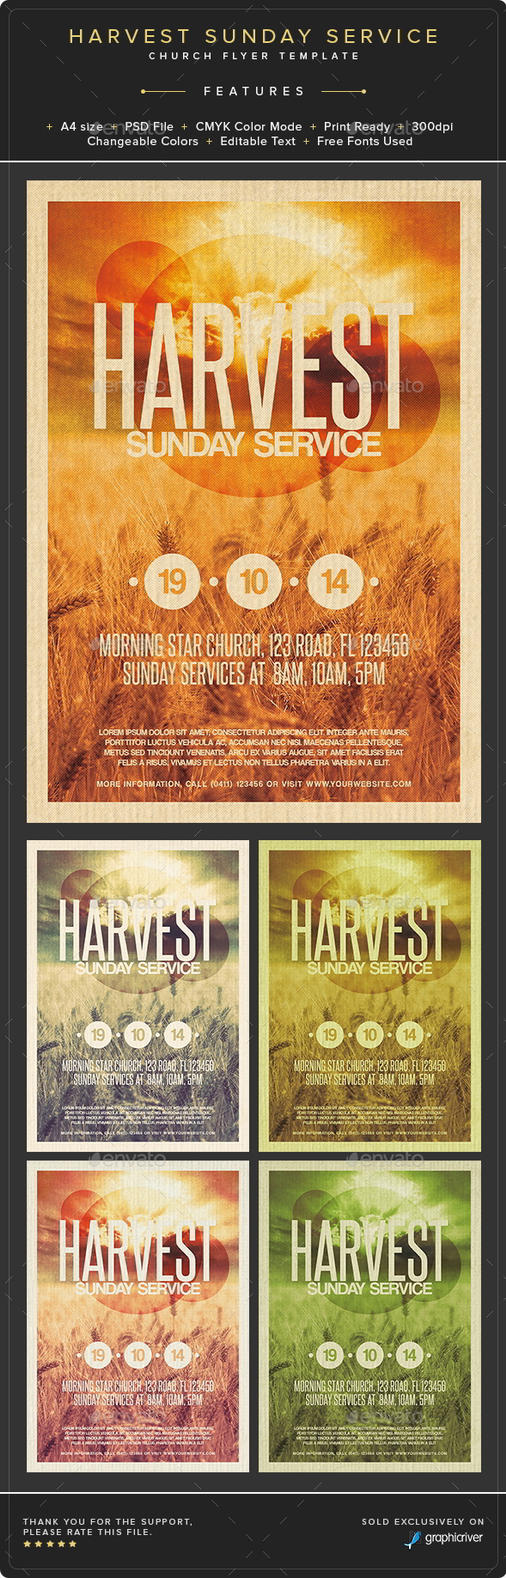 Harvest Sunday Service Flyer Template by Junaedy-Ponda